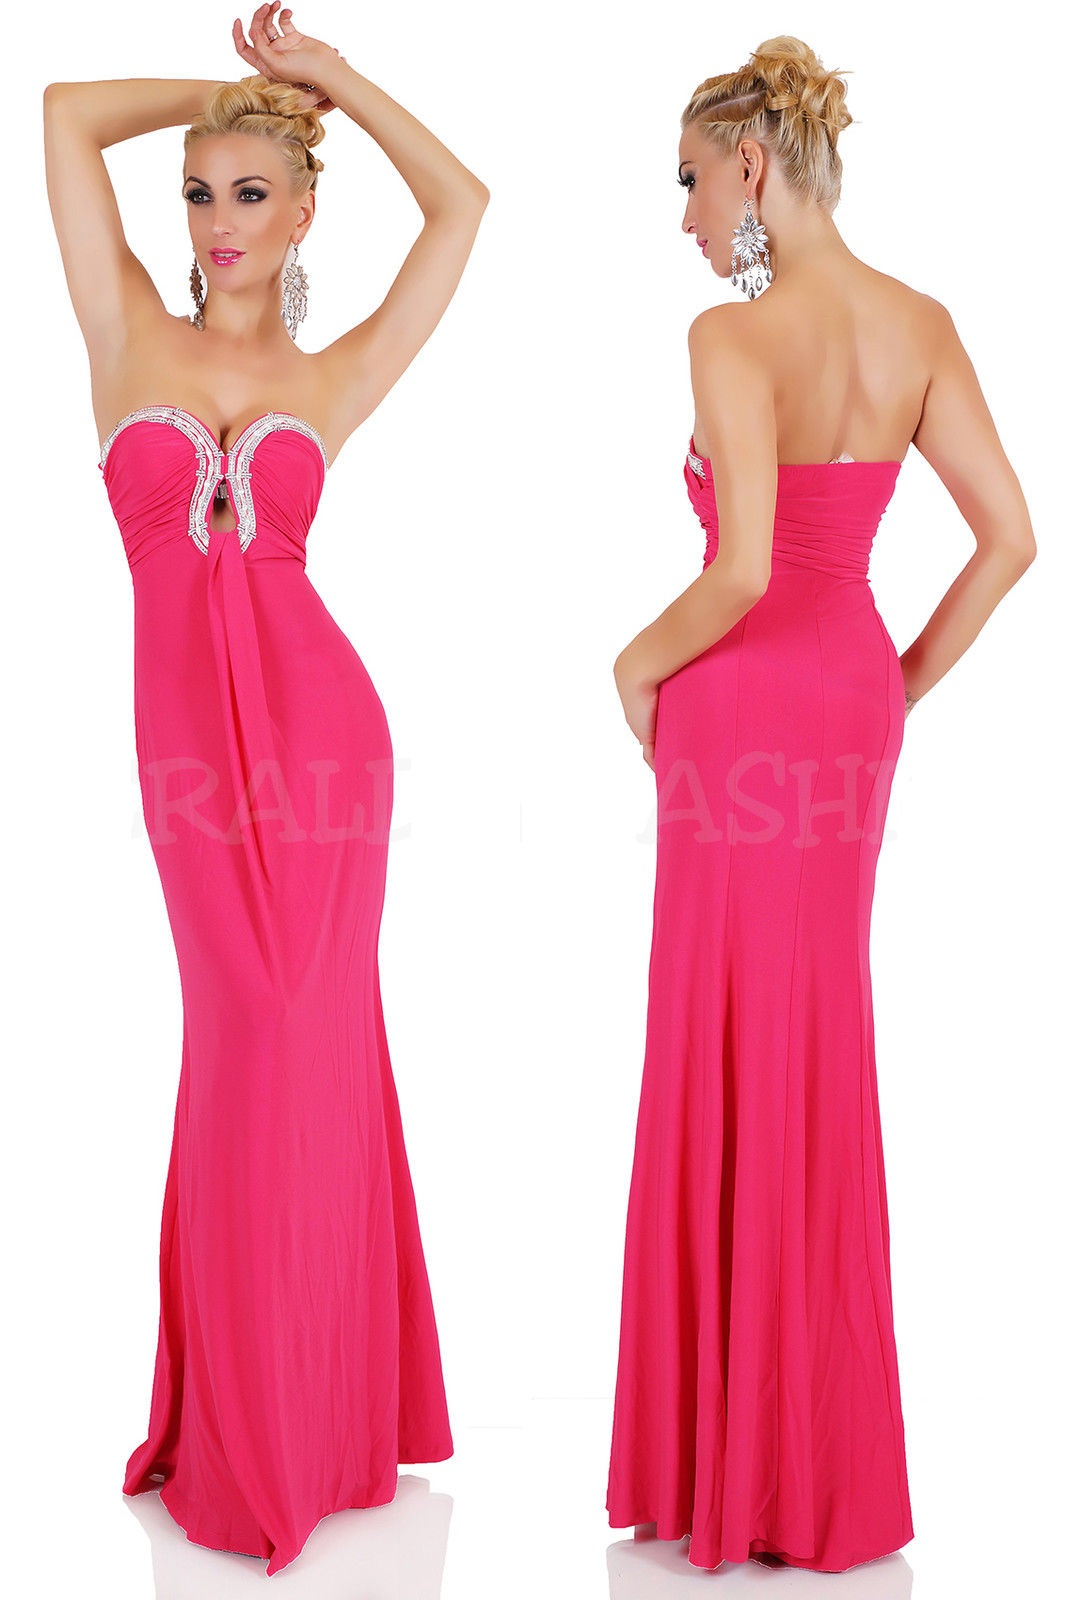 8aa2f03cd388c SeXy MAXI DRESS BANDEAU LONG SUMMER BEACH PARTY EVENING Sexy ...